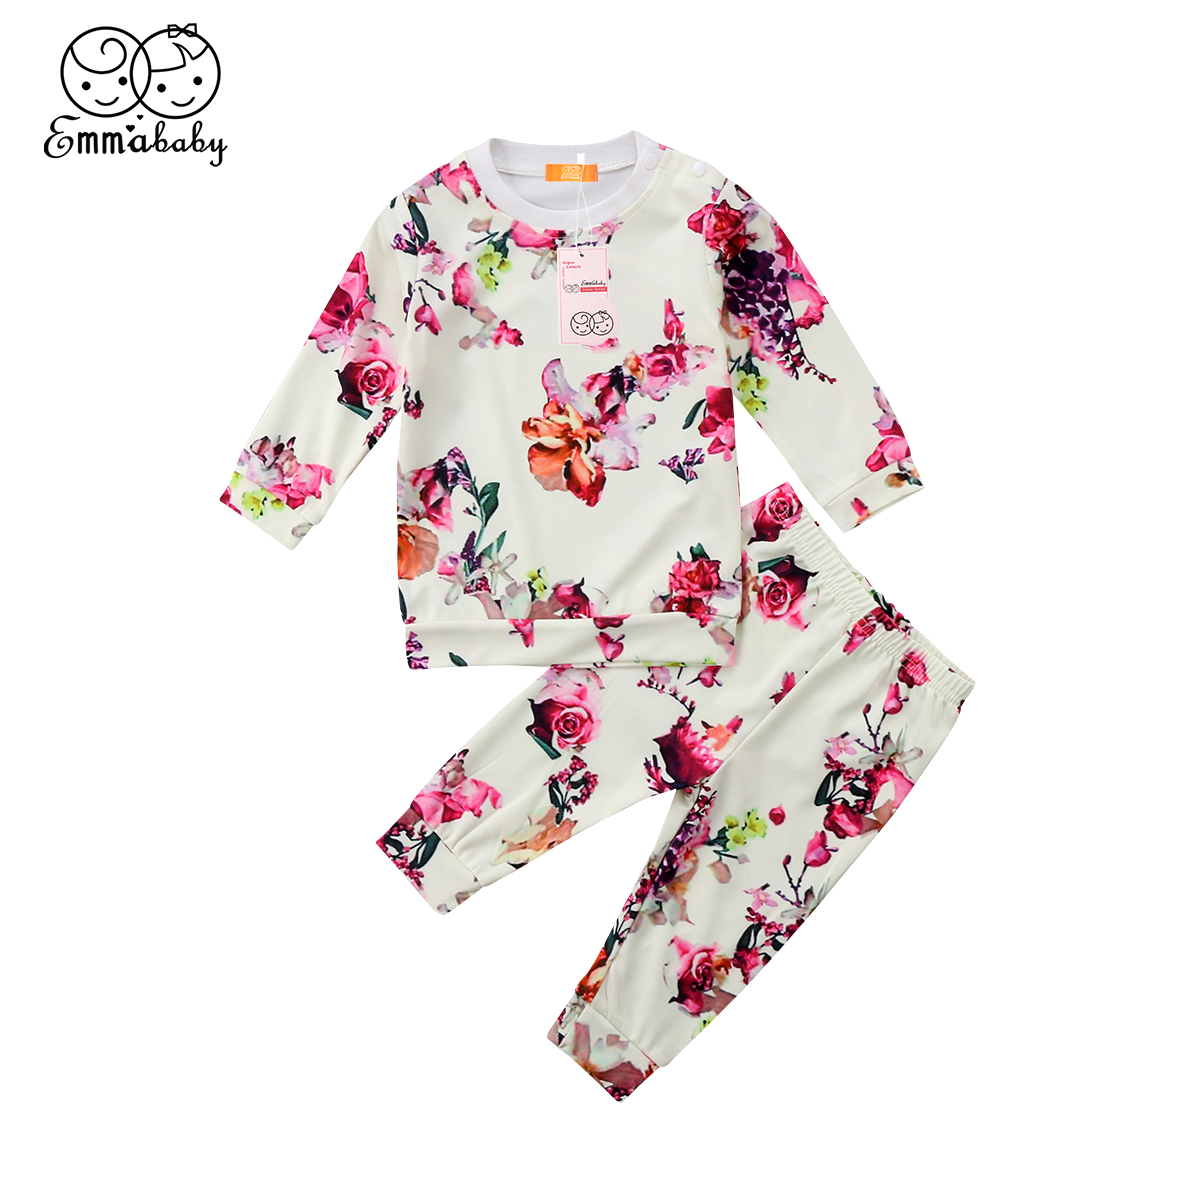 2018 new casual clothes set Newborn Baby Girl Floral print Clothes Tops T-shirt+Long Pants 2Pcs lovely kid Outfits Set 3-24M